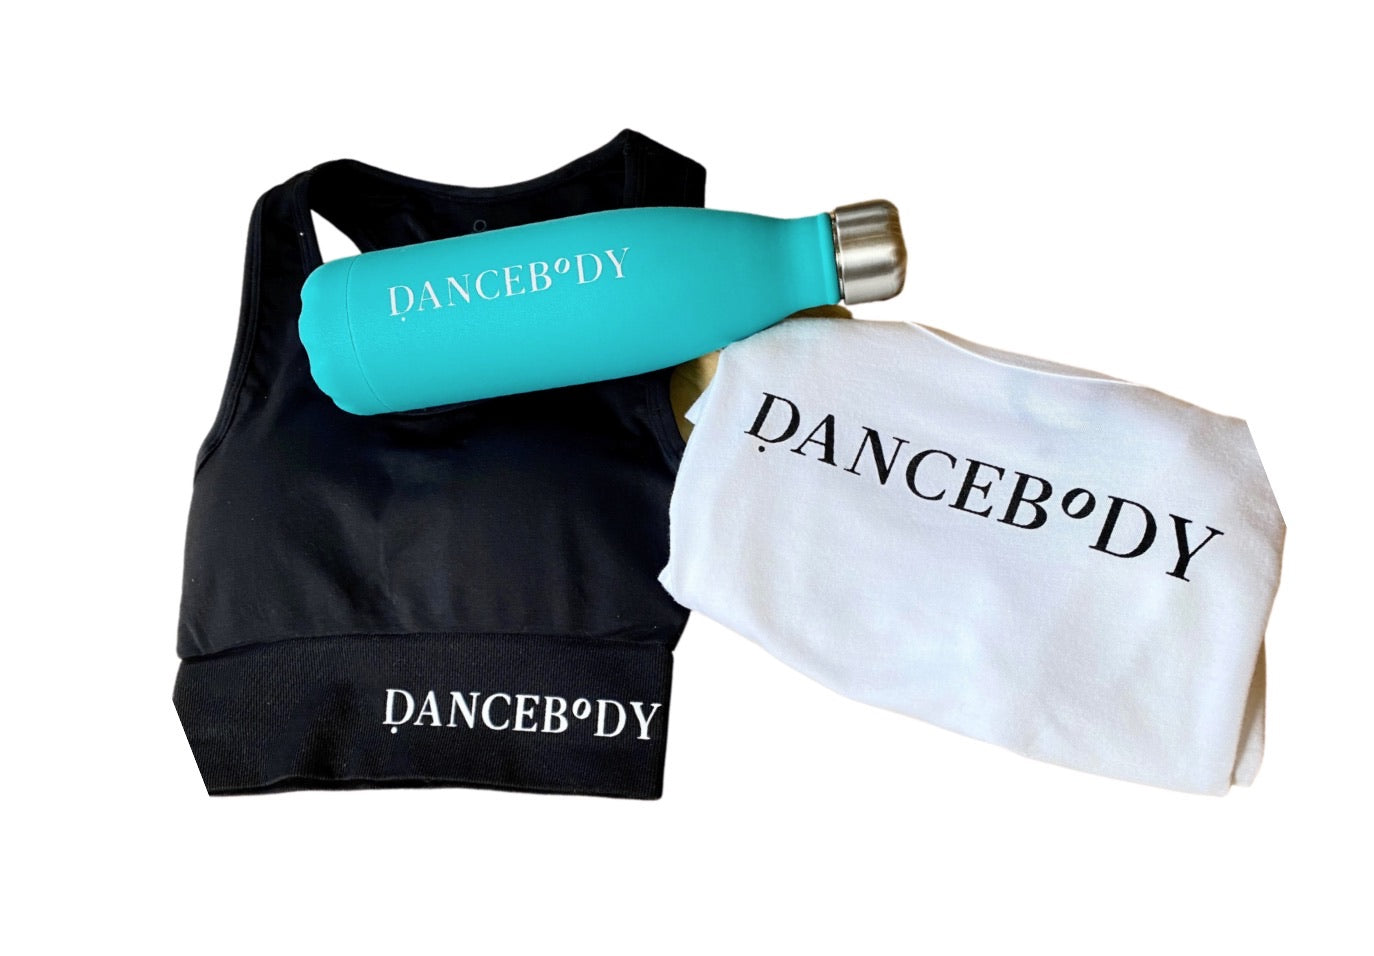 DanceBody Babe Bundle